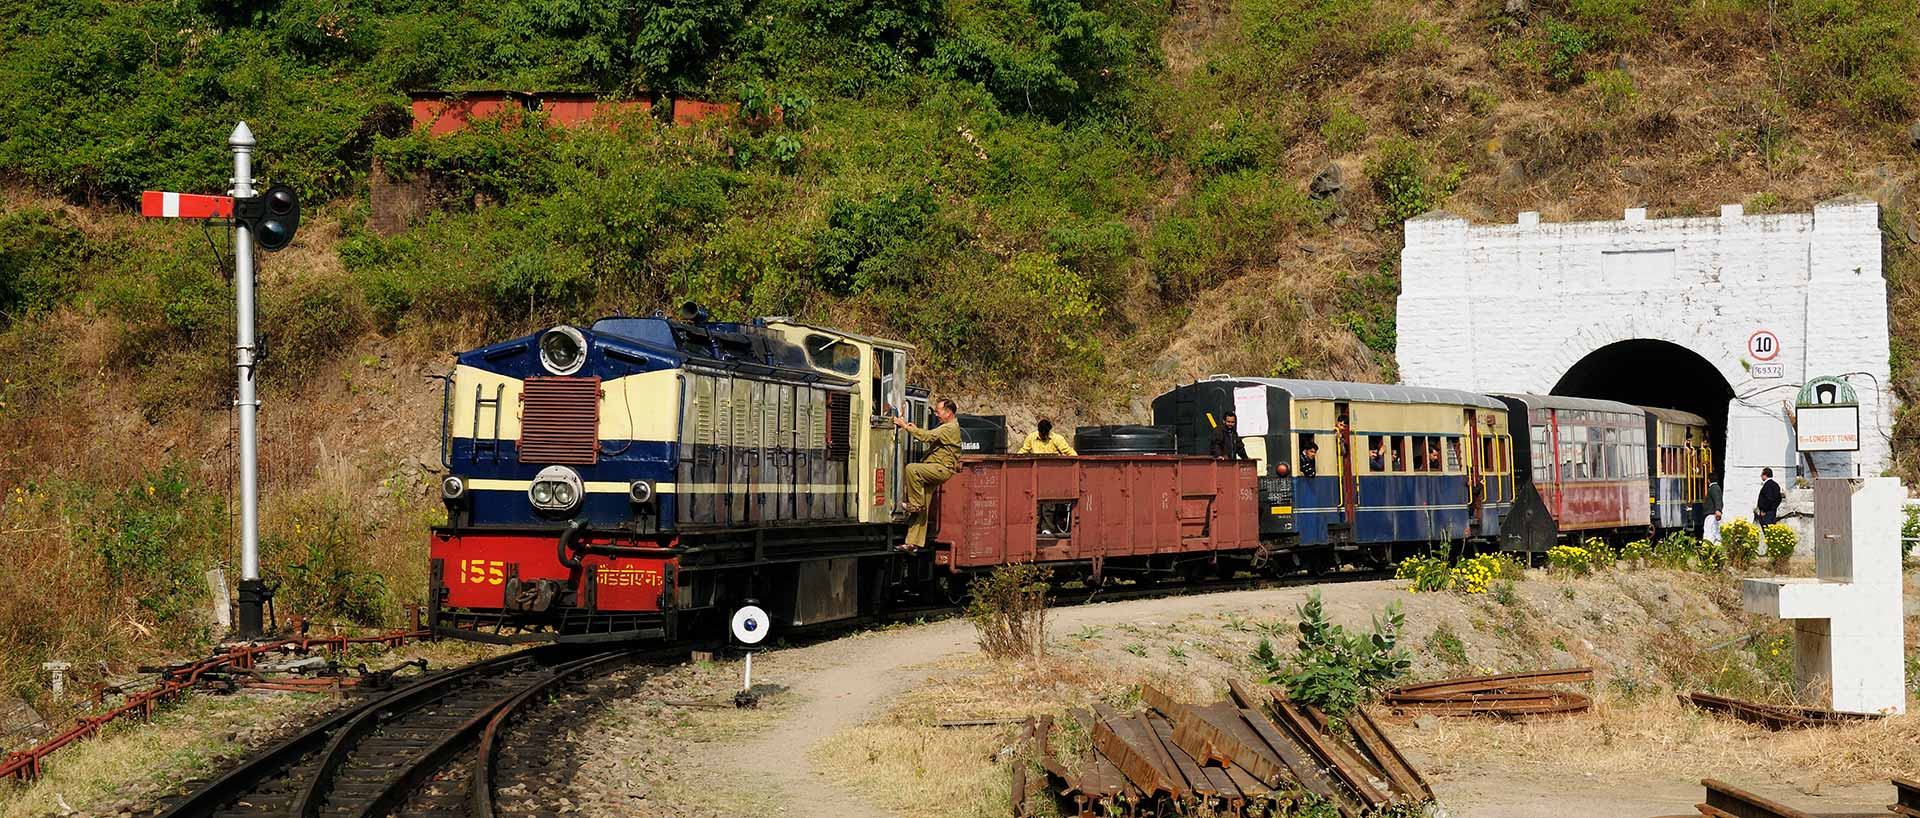 Toy train Himachal Pradesh